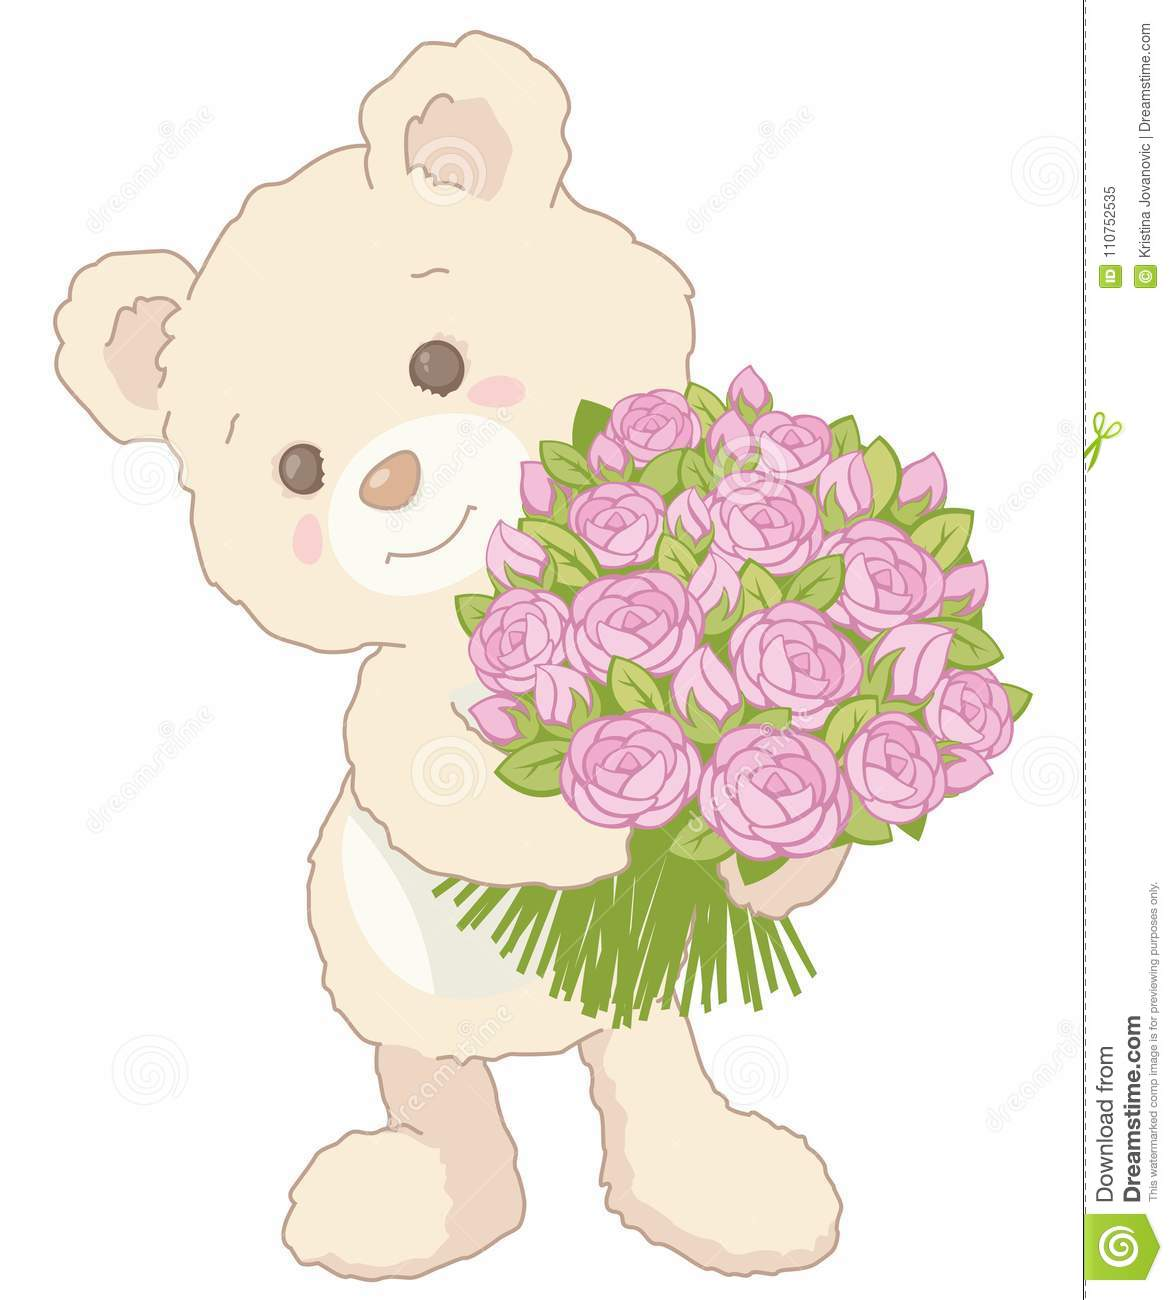 Cute Little Teddy Bear Holding A Bouquet Of Pink Roses Vintage Style